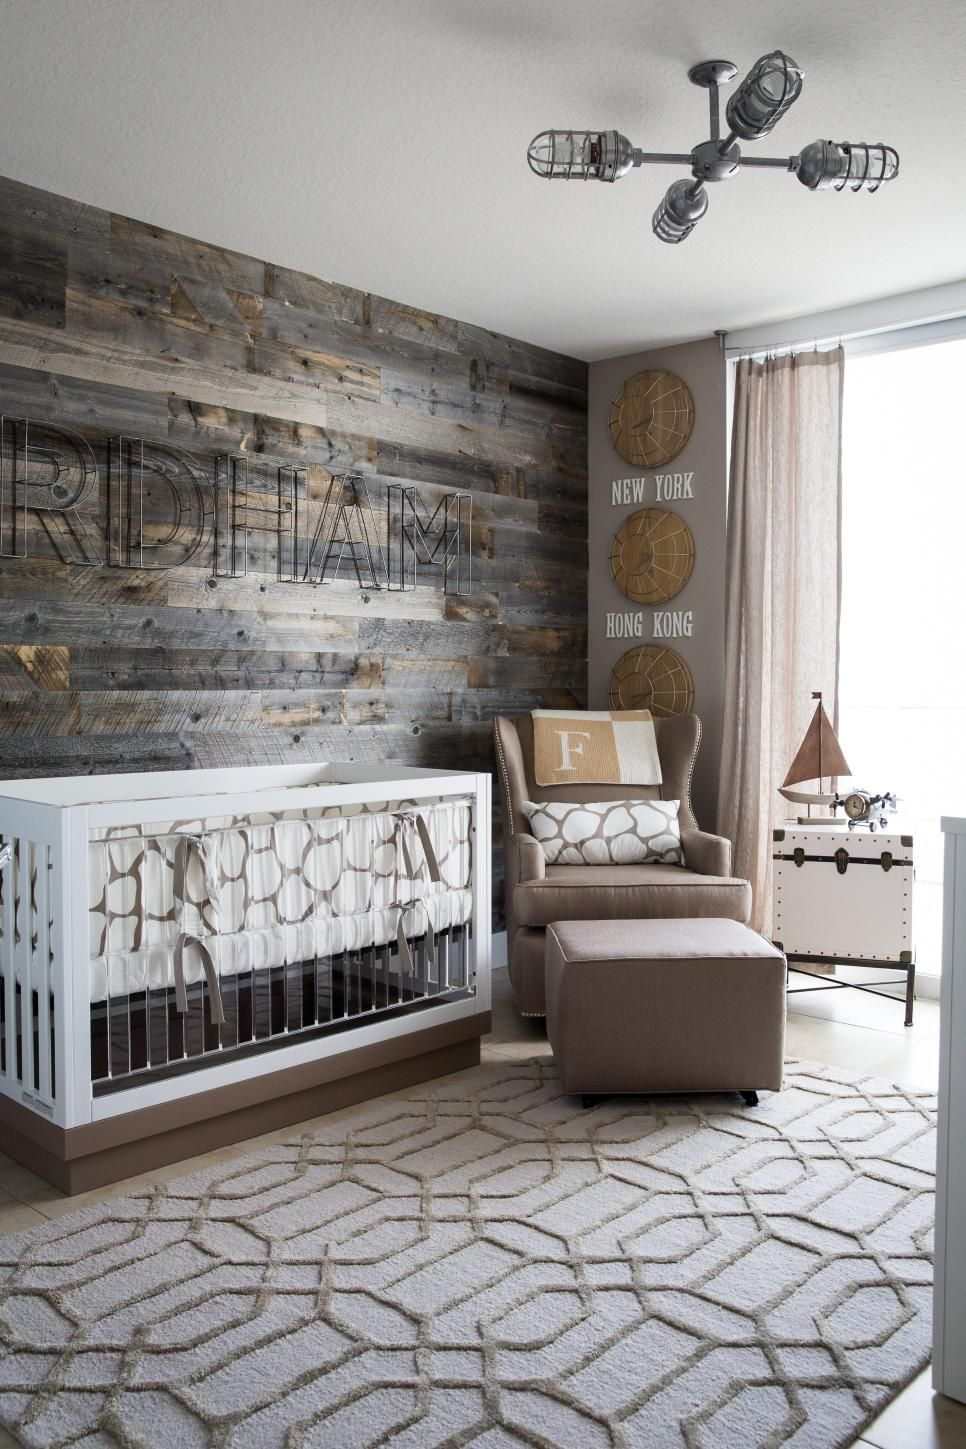 Baby Boy Room Mural Ideas: This Subtle Travel-themed Nursery Features A Driftwood